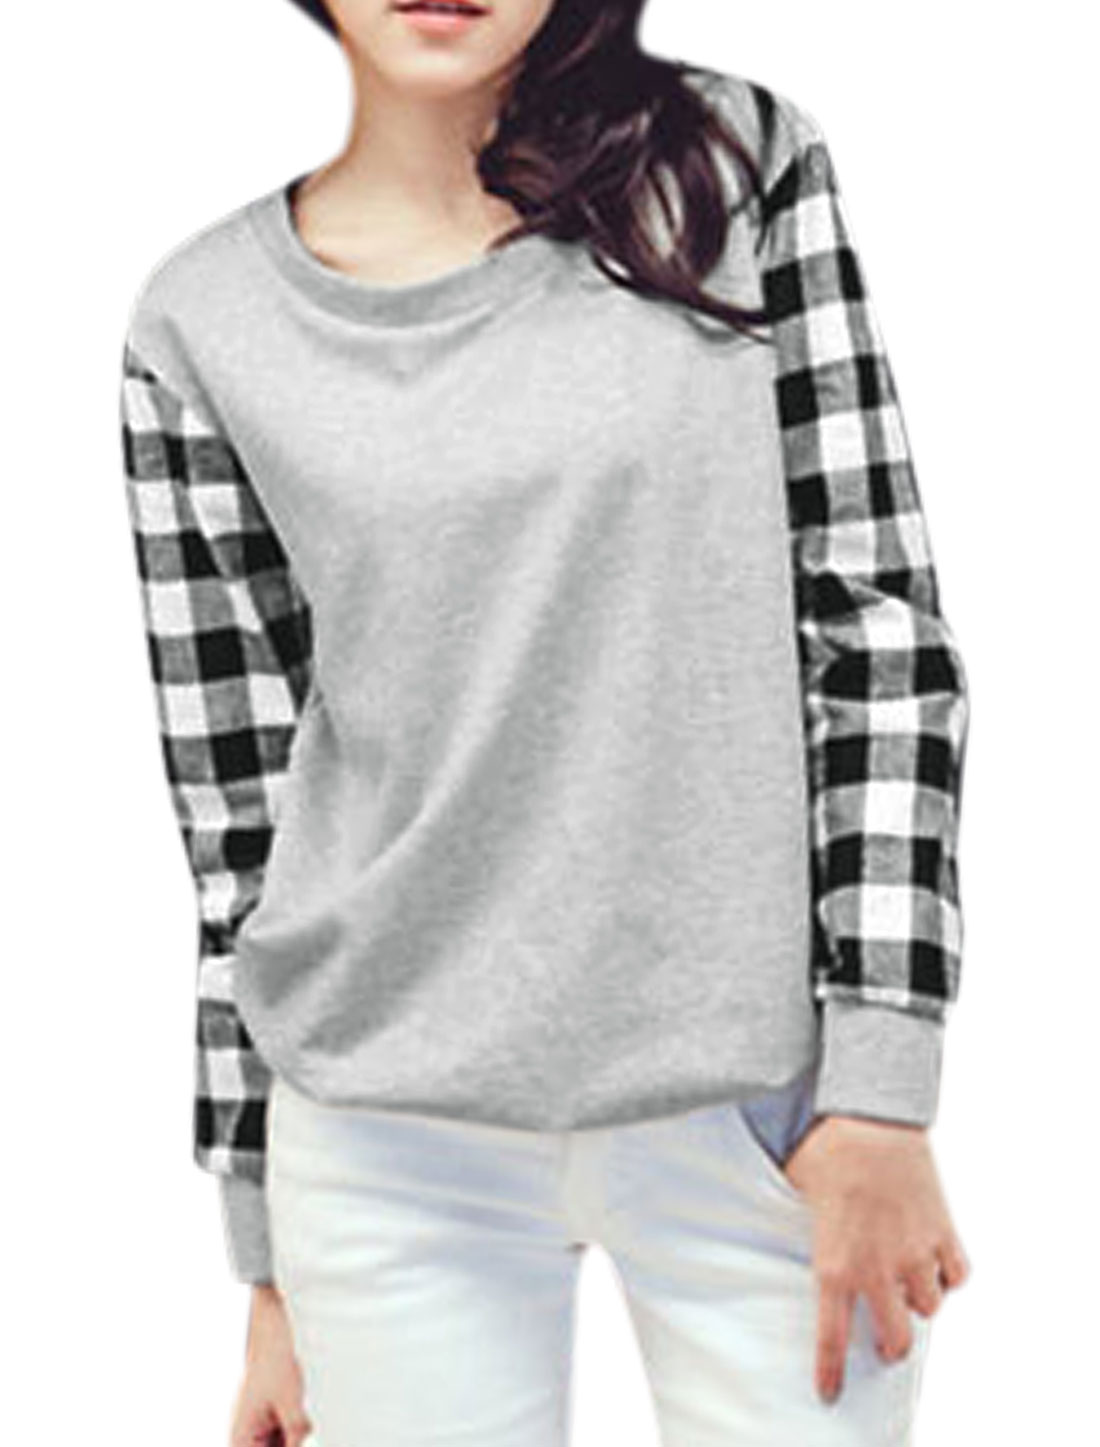 Ladies Long Sleeves Splicing Check Light Gray Casual Shirt XS